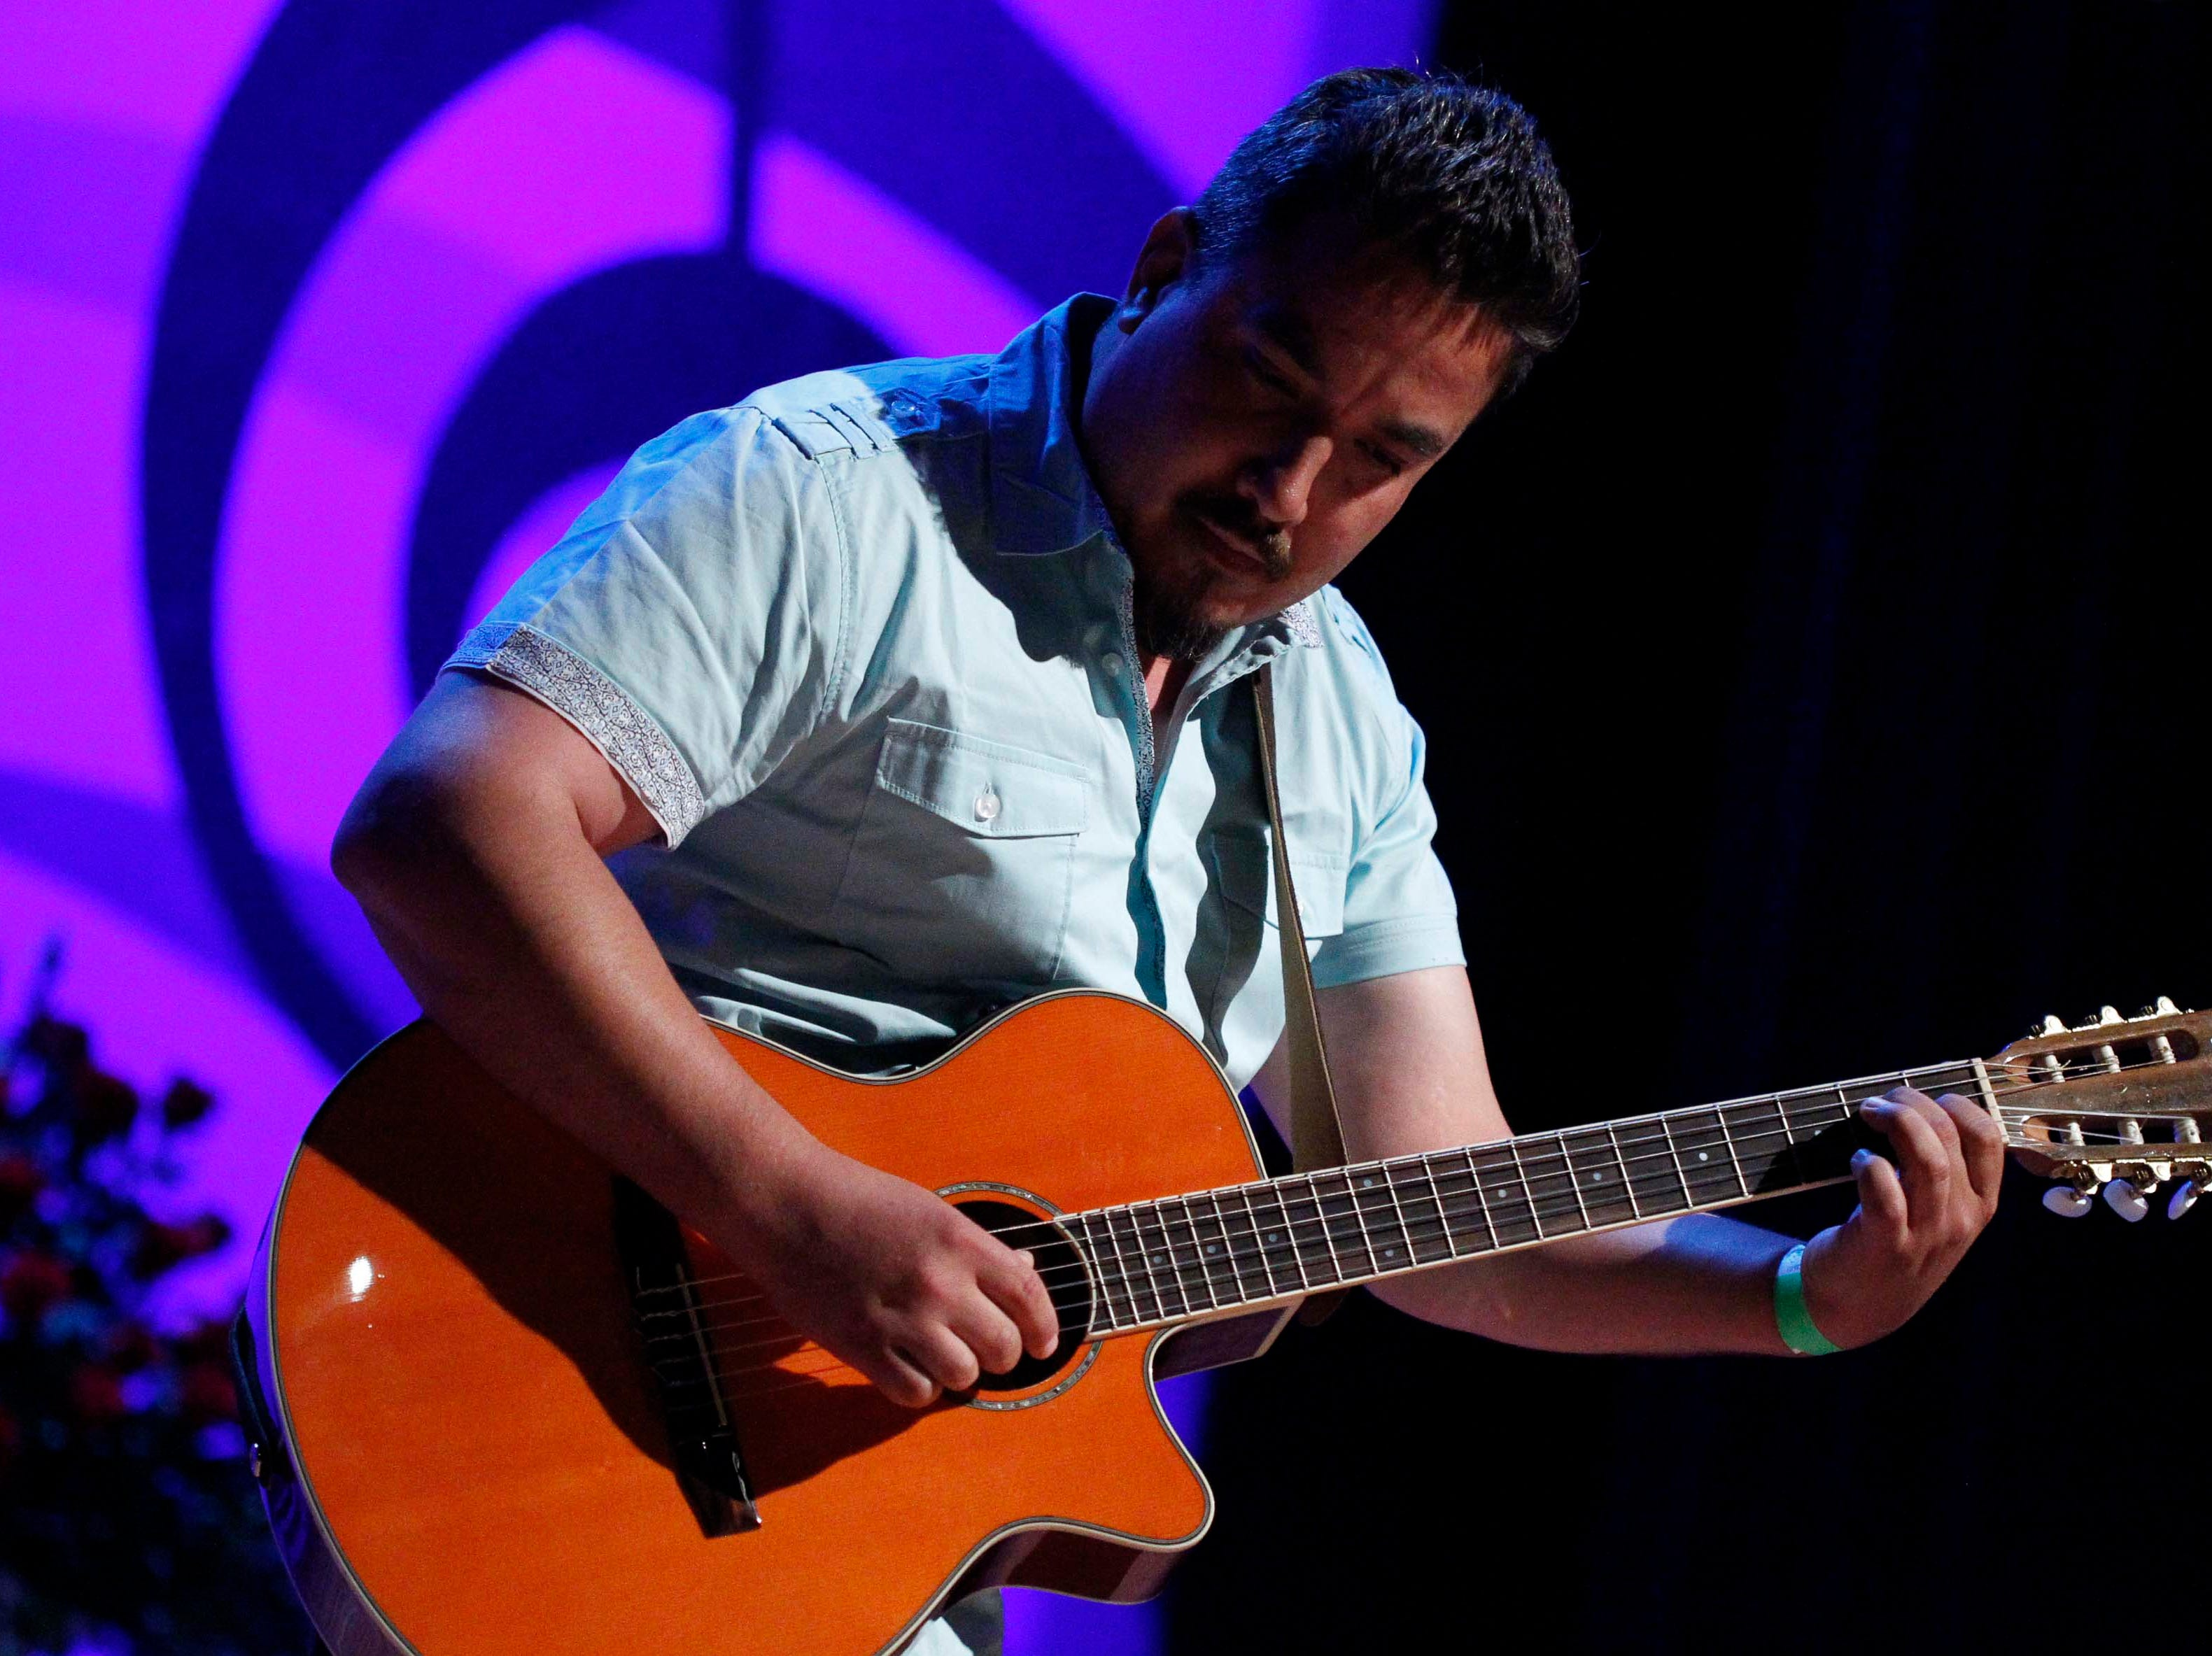 Jesús Brian Messina Sánchez plays his guitar during the12th annual Noche Bohemia at Sherwood Hall on Saturday, April 27, 2019 in Salinas, Calif.